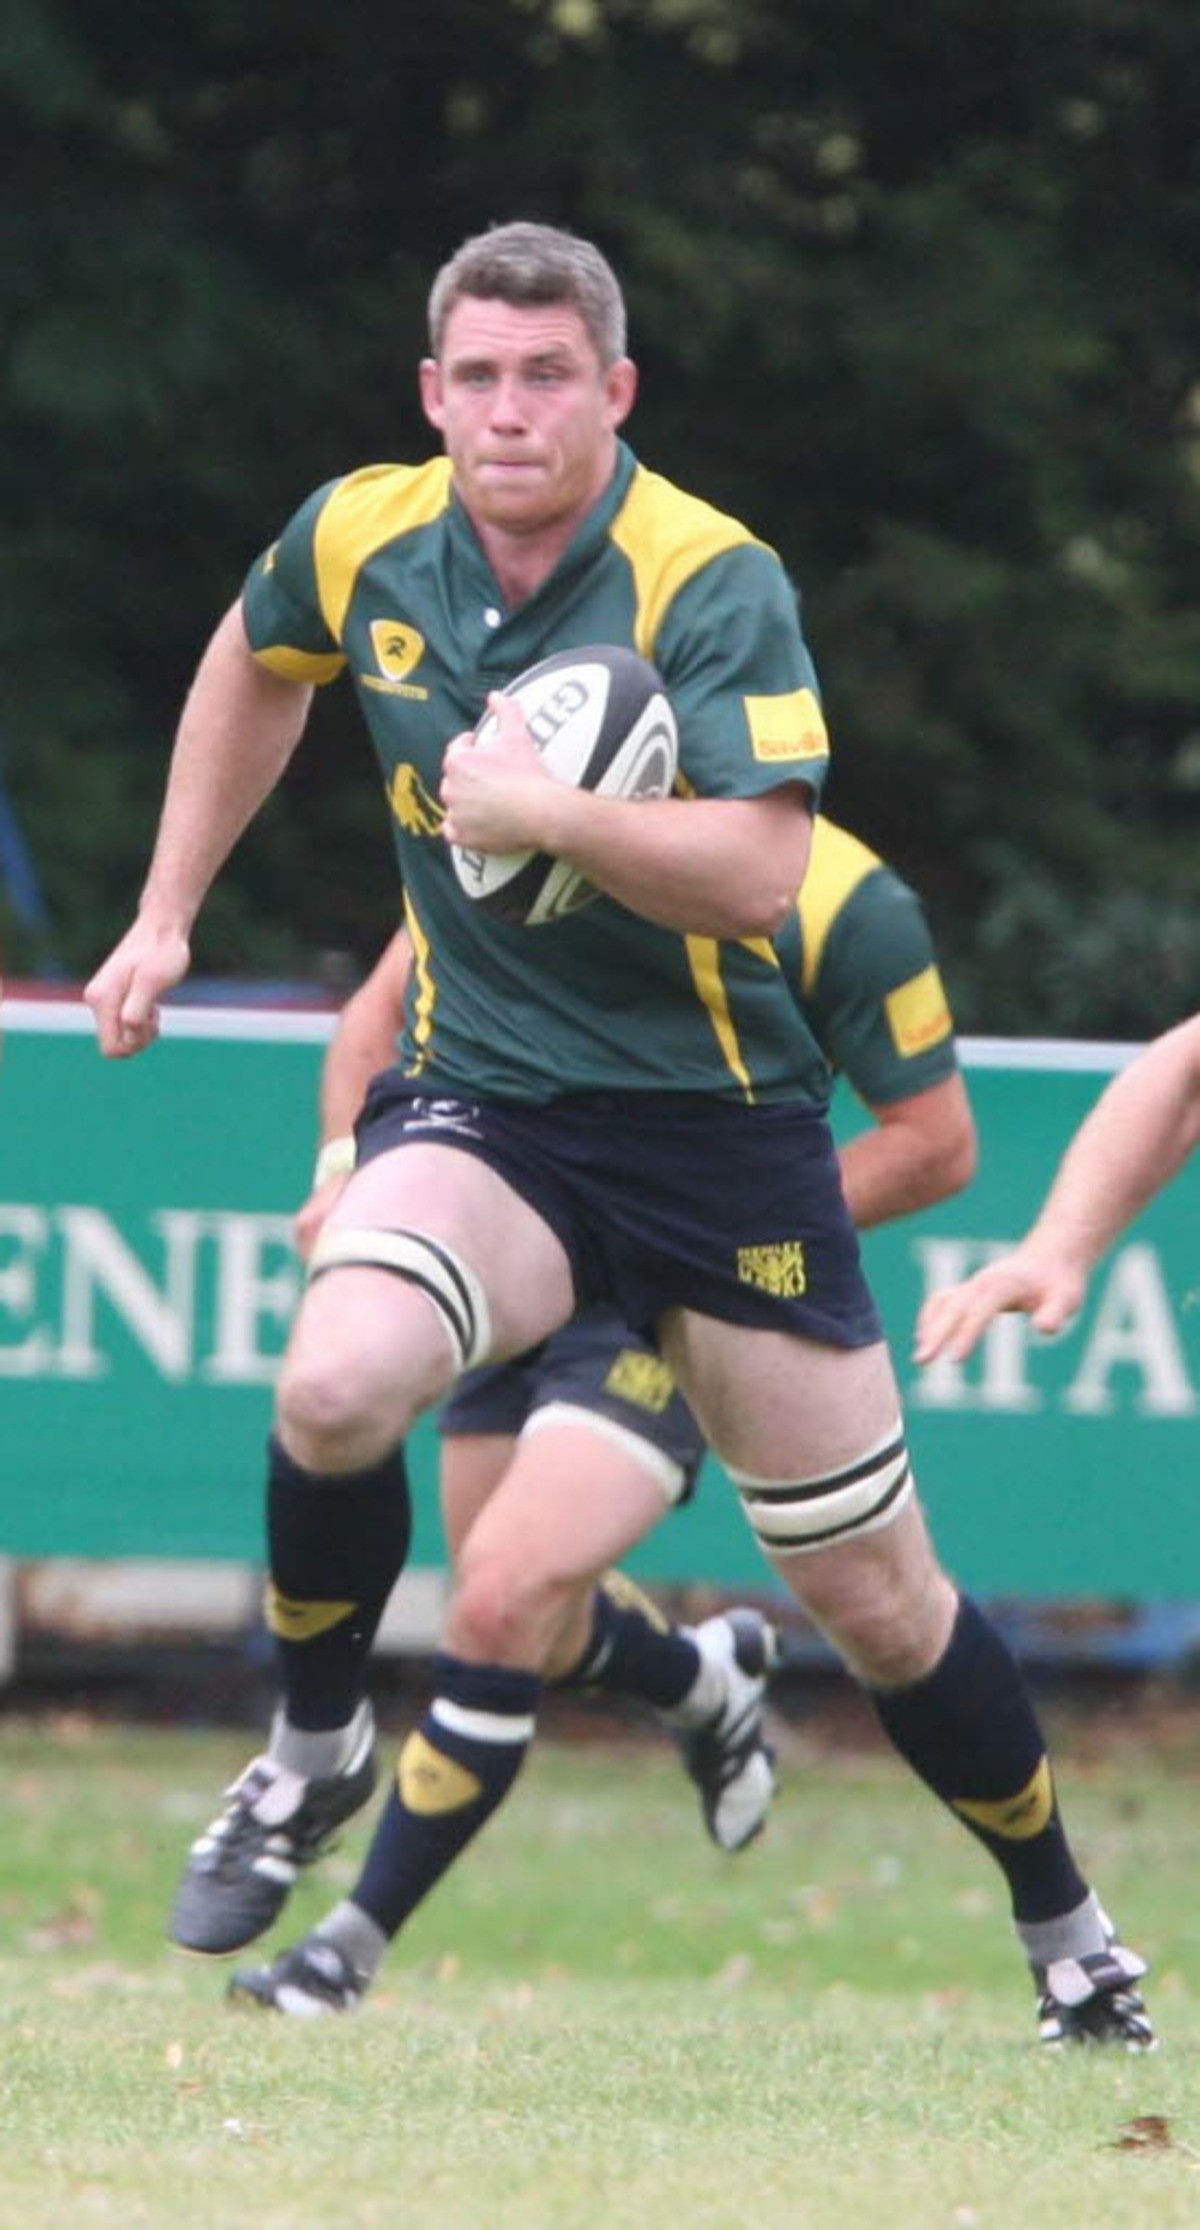 Matt Payne scored a try for Henley